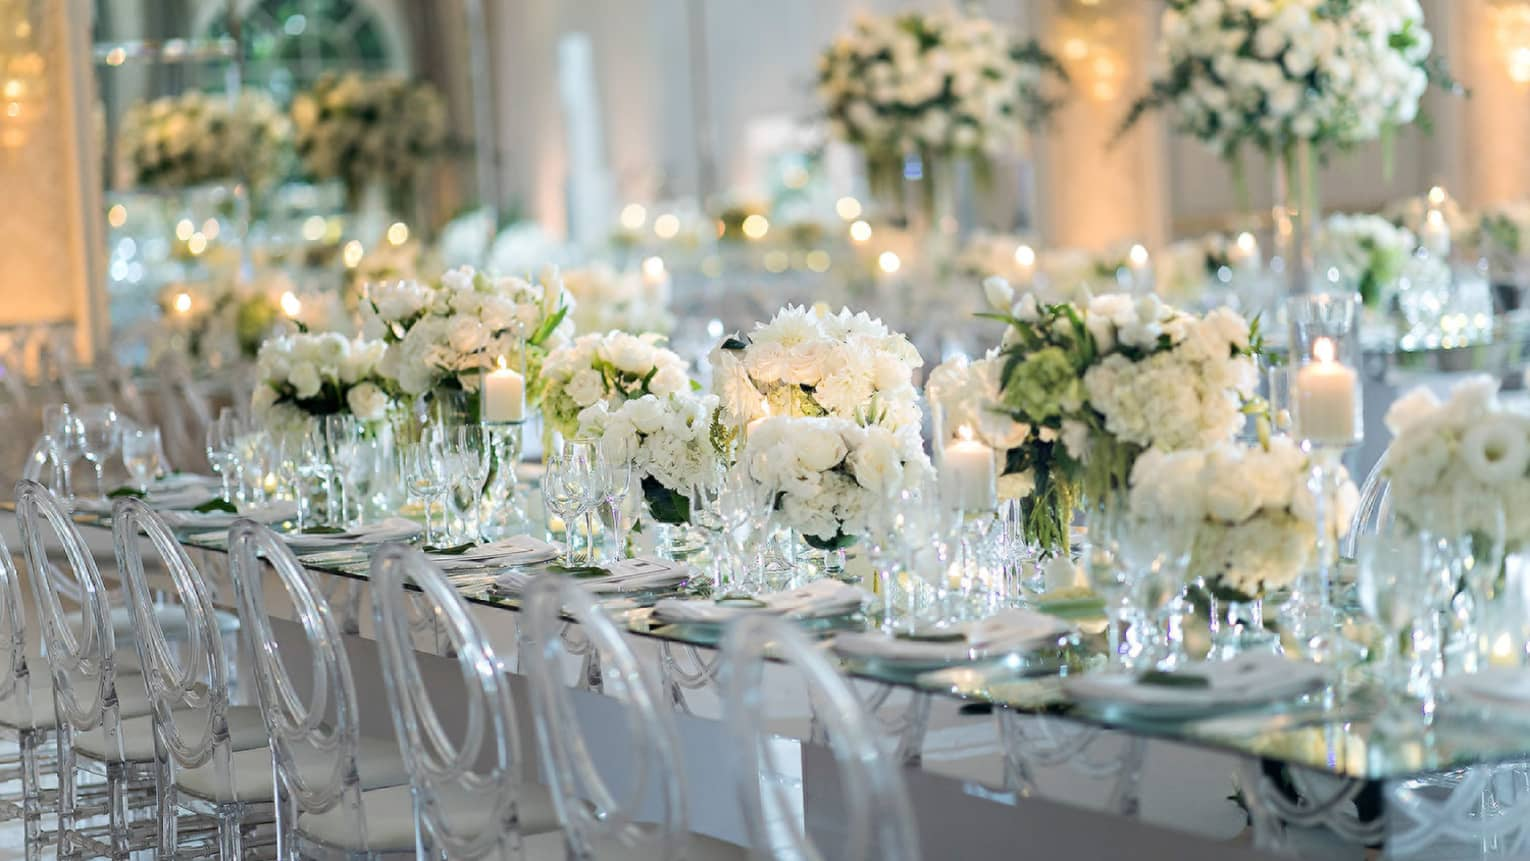 Long wedding dining table filled with white flowers, lined with transparent chairs